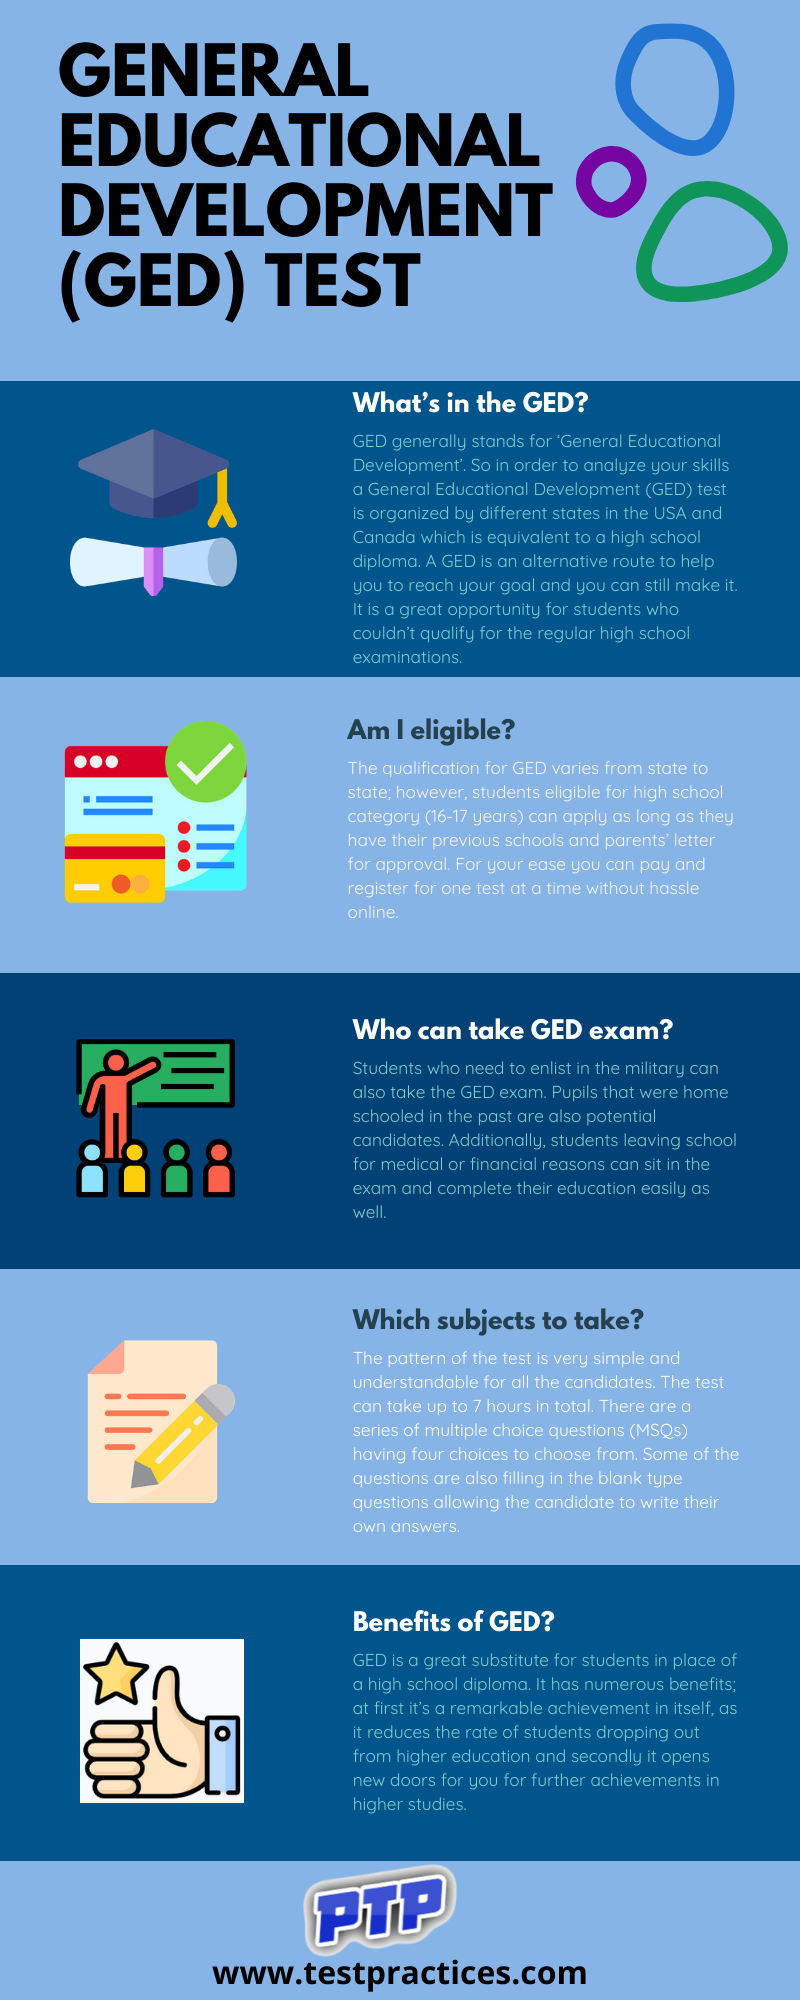 General Educational Development (GED) TEST